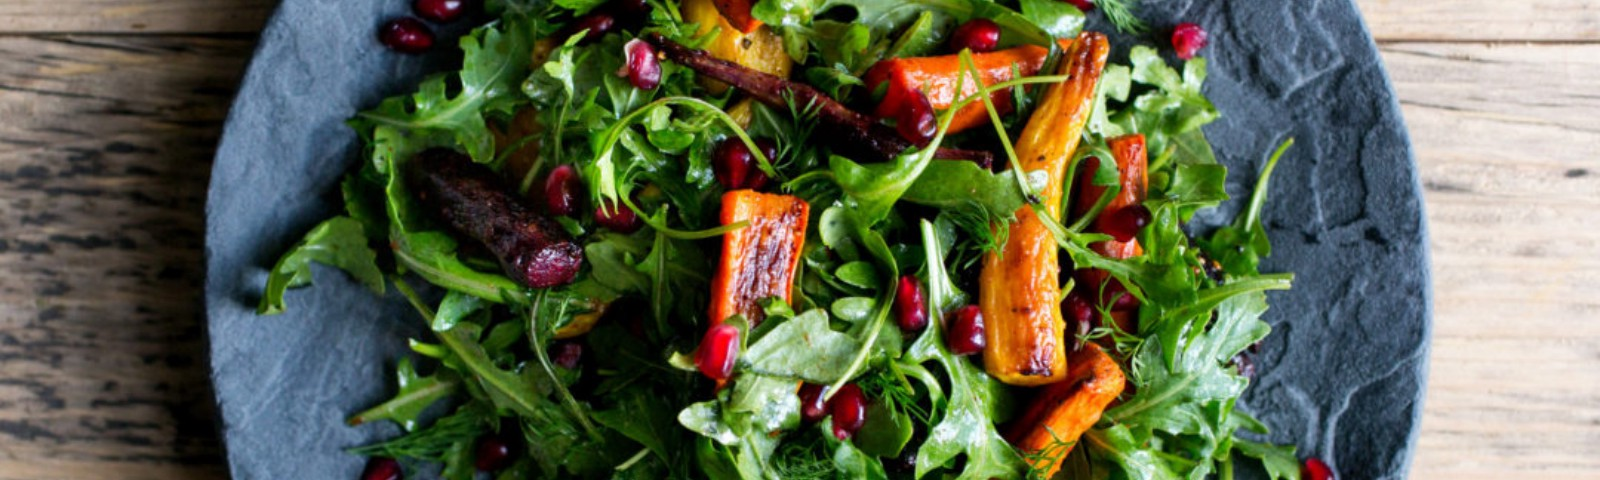 Roasted Carrot Salad With Arugula and Pomegranate